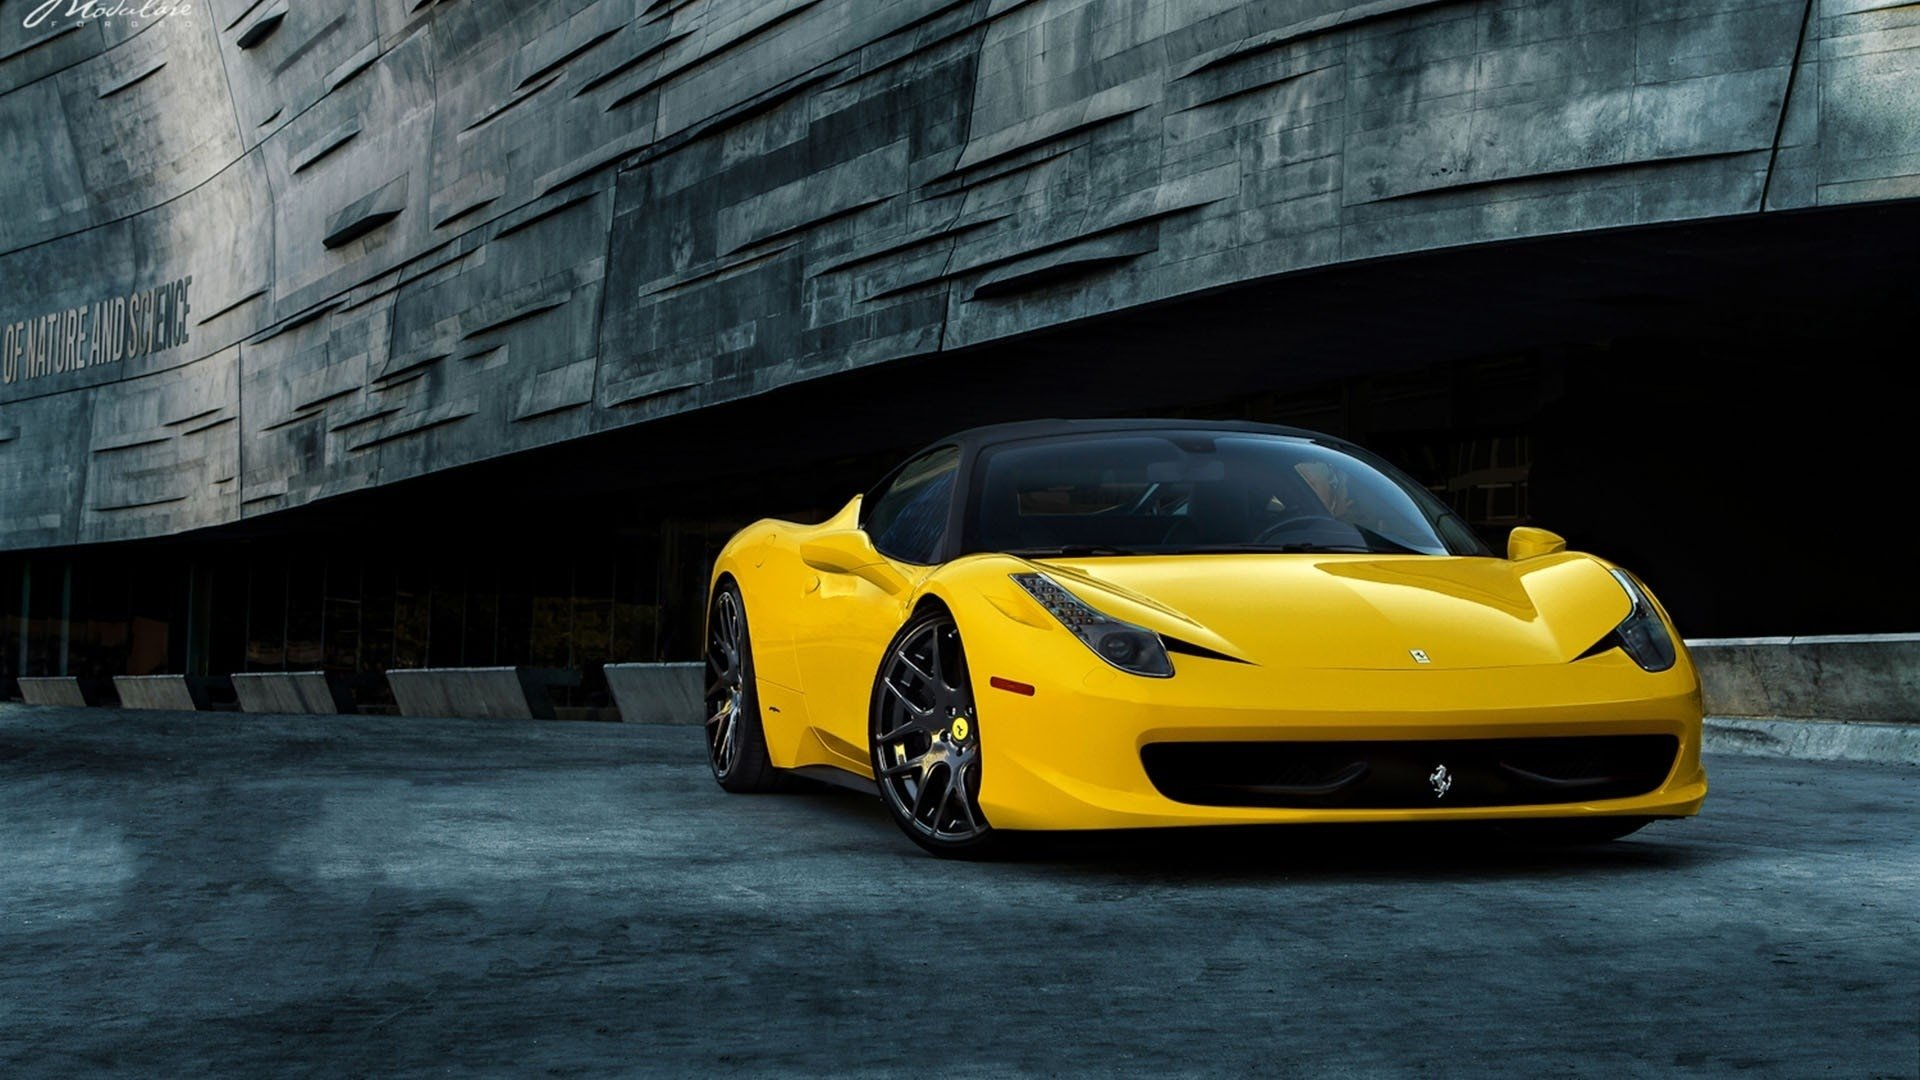 1920x1080 - Ferrari 458 Italia Wallpapers 9